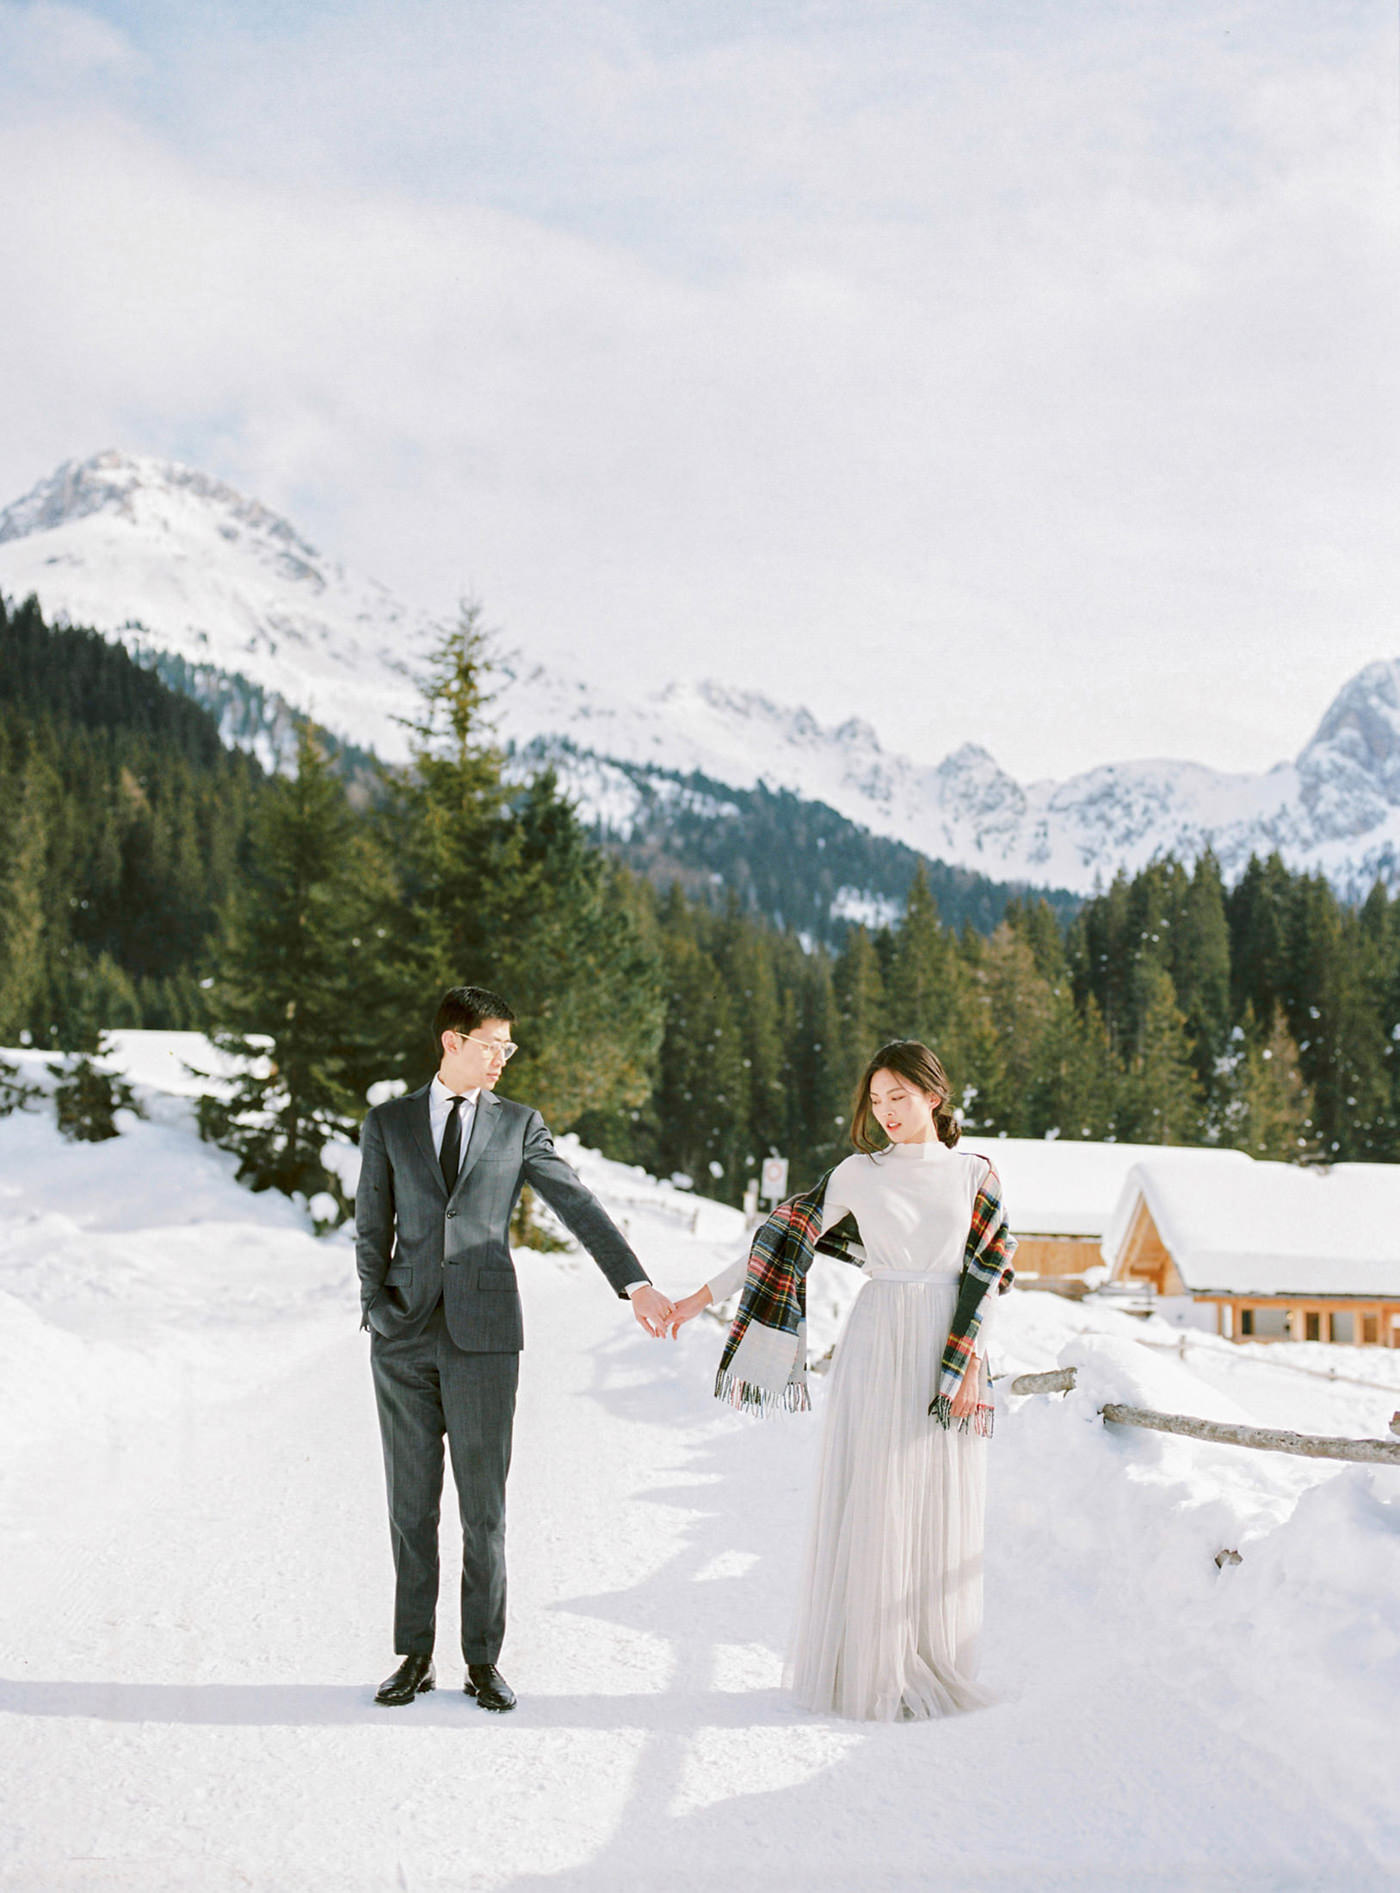 Peng & Charles in Dolomites by CHYMO & MORE Photography (http://